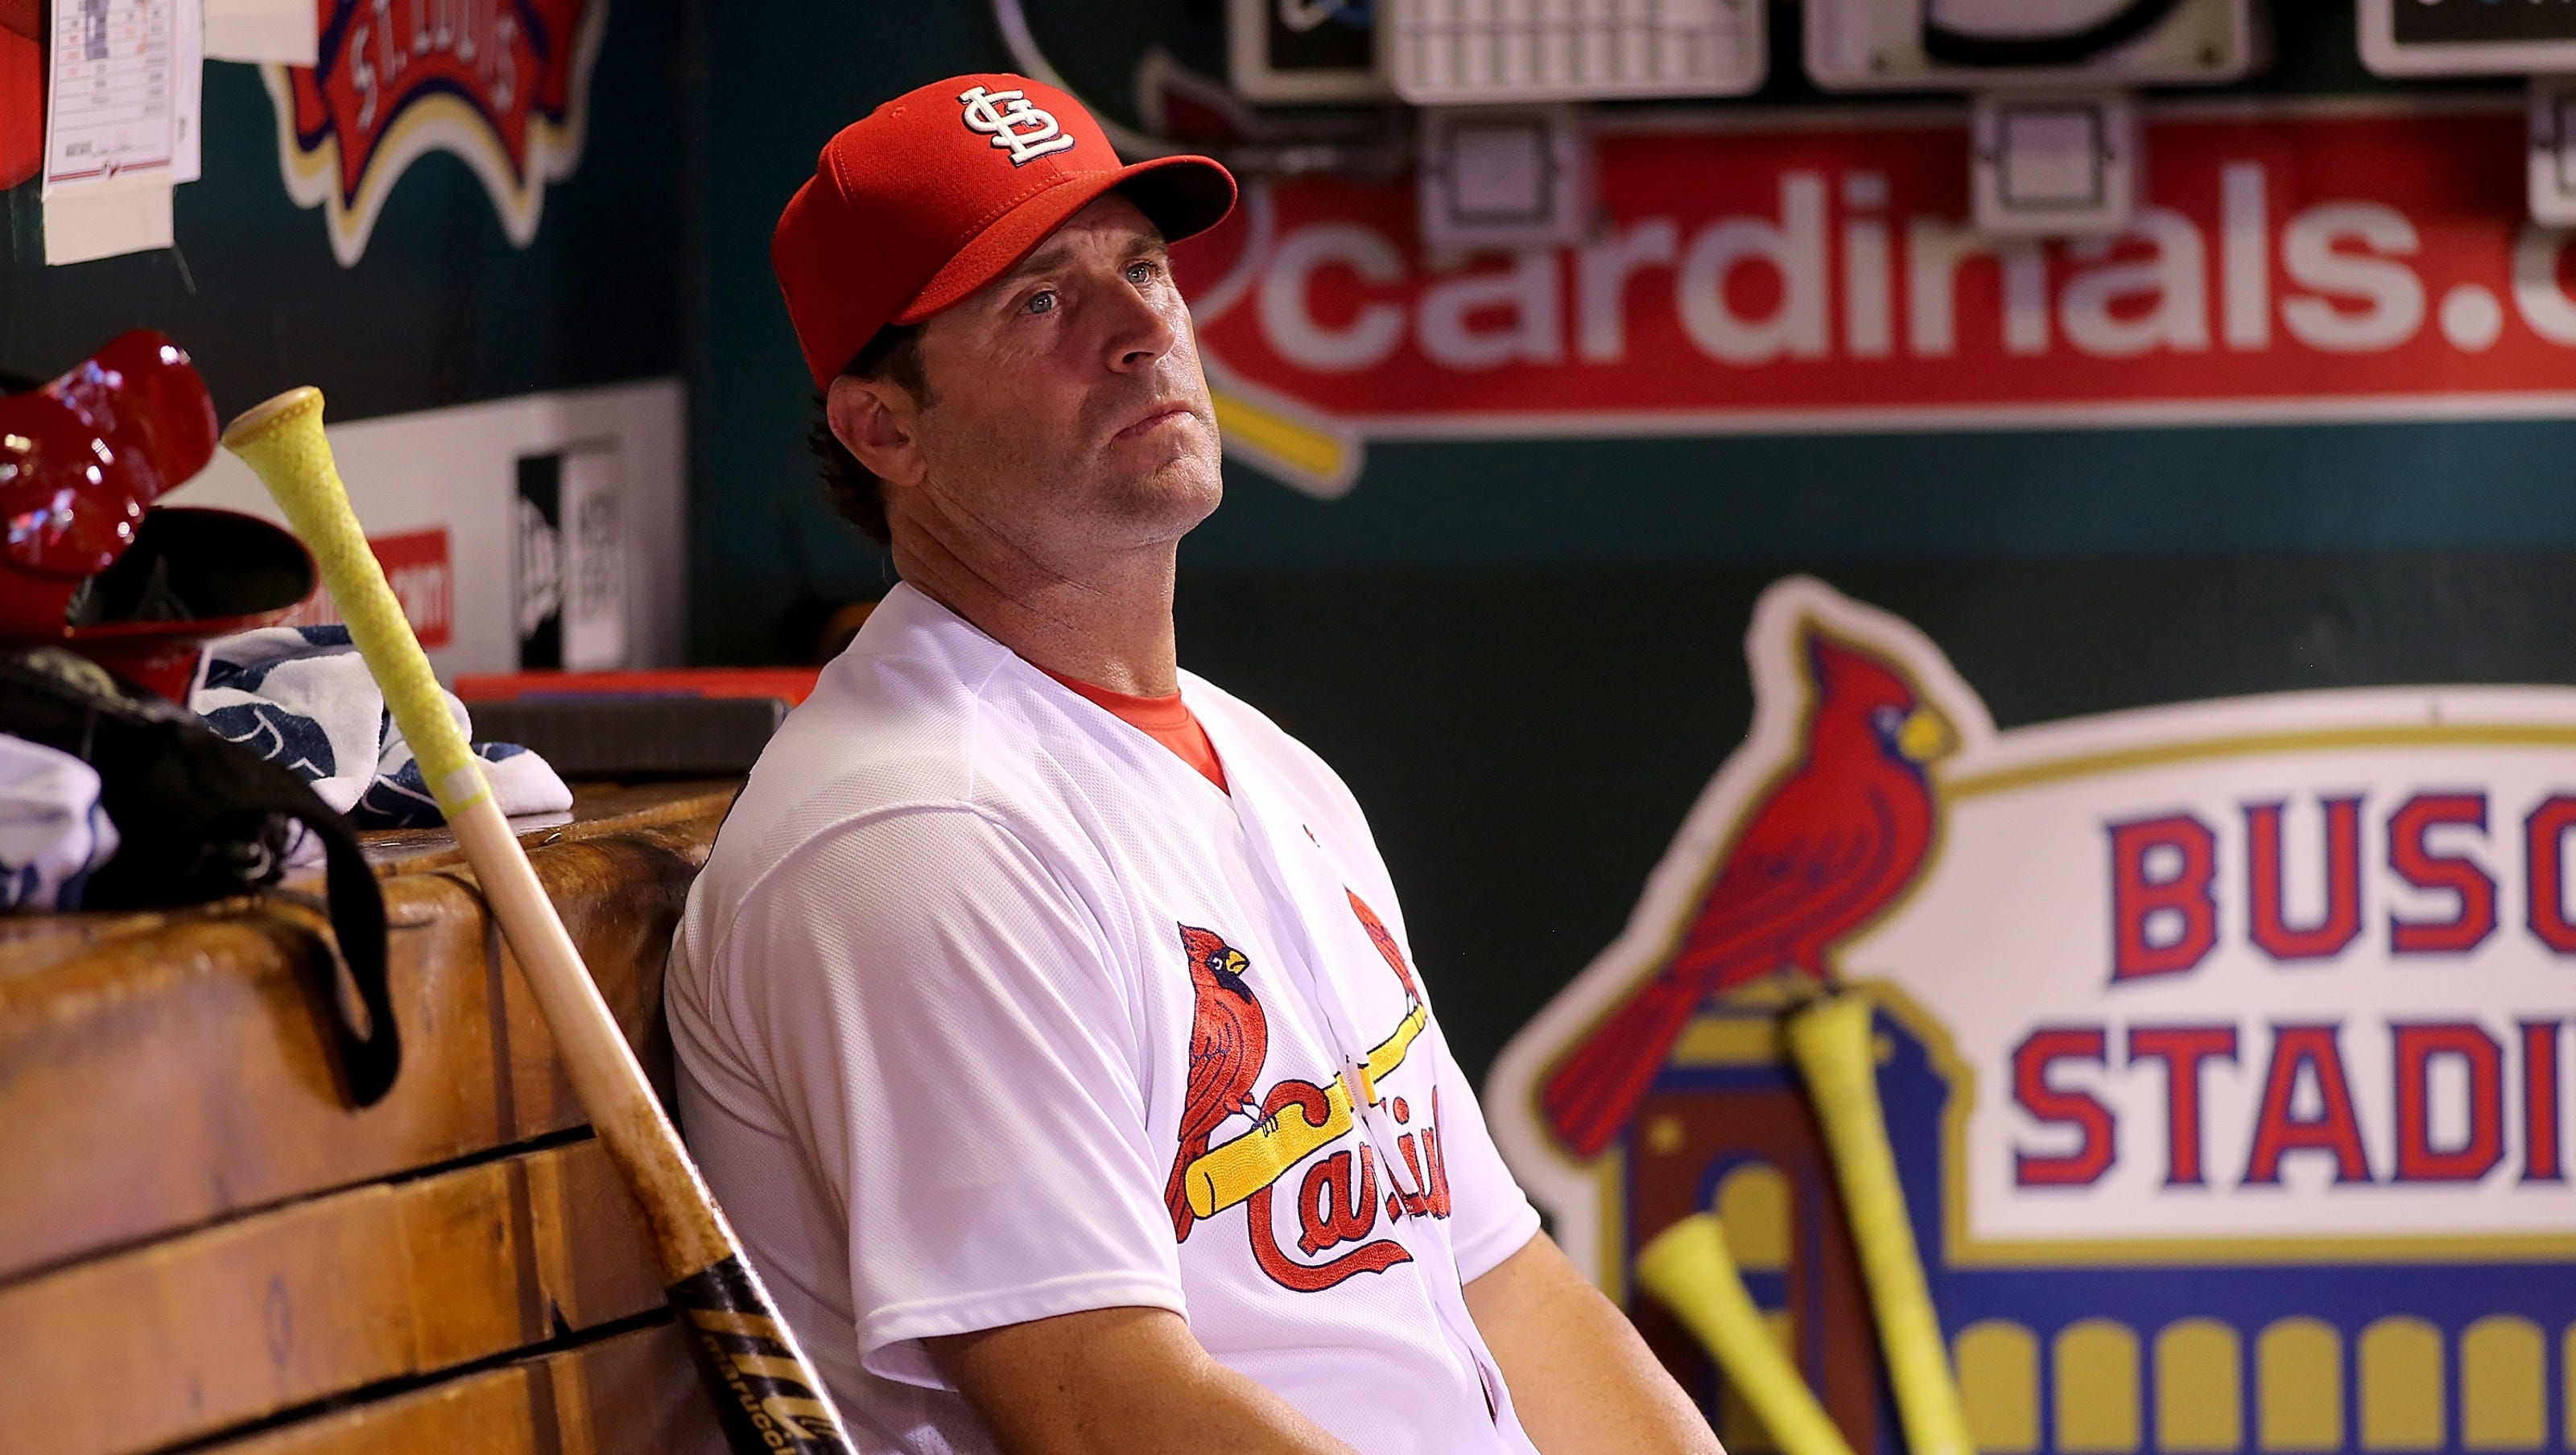 636672494427212922-usp-mlb--miami-marlins-at-st.-louis-cardinals